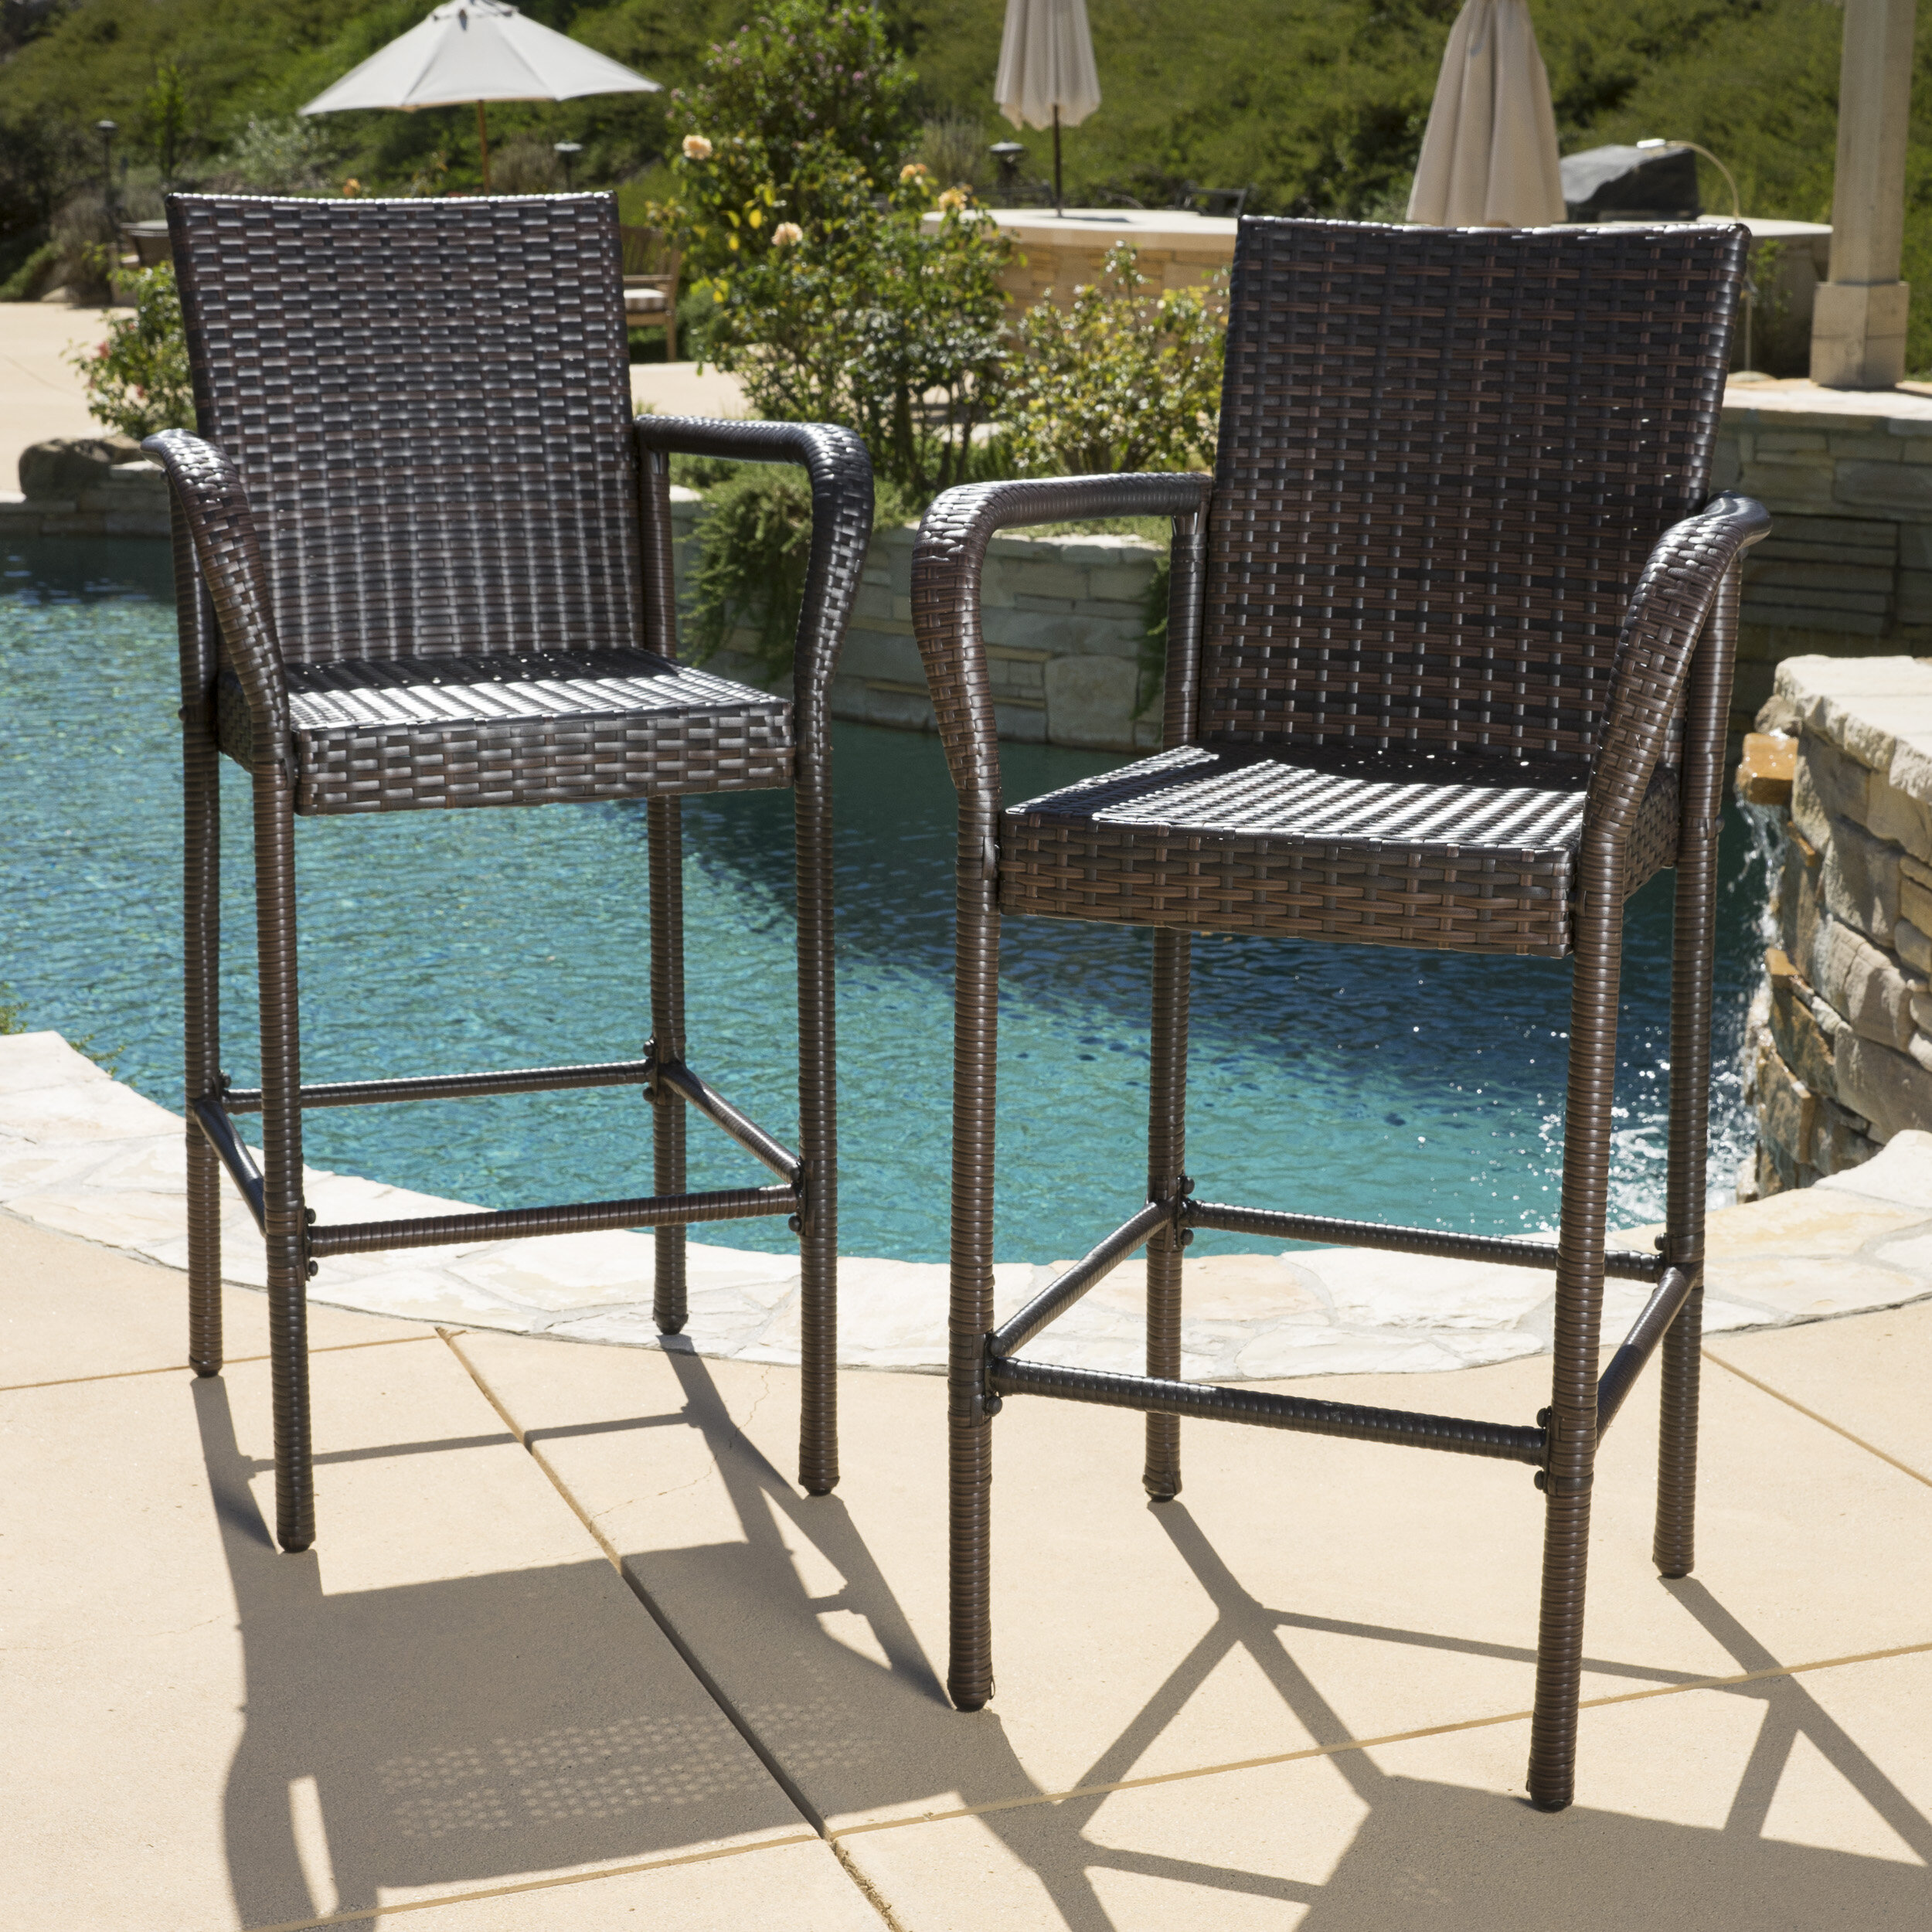 Best Of Patio Bar Table and Chairs